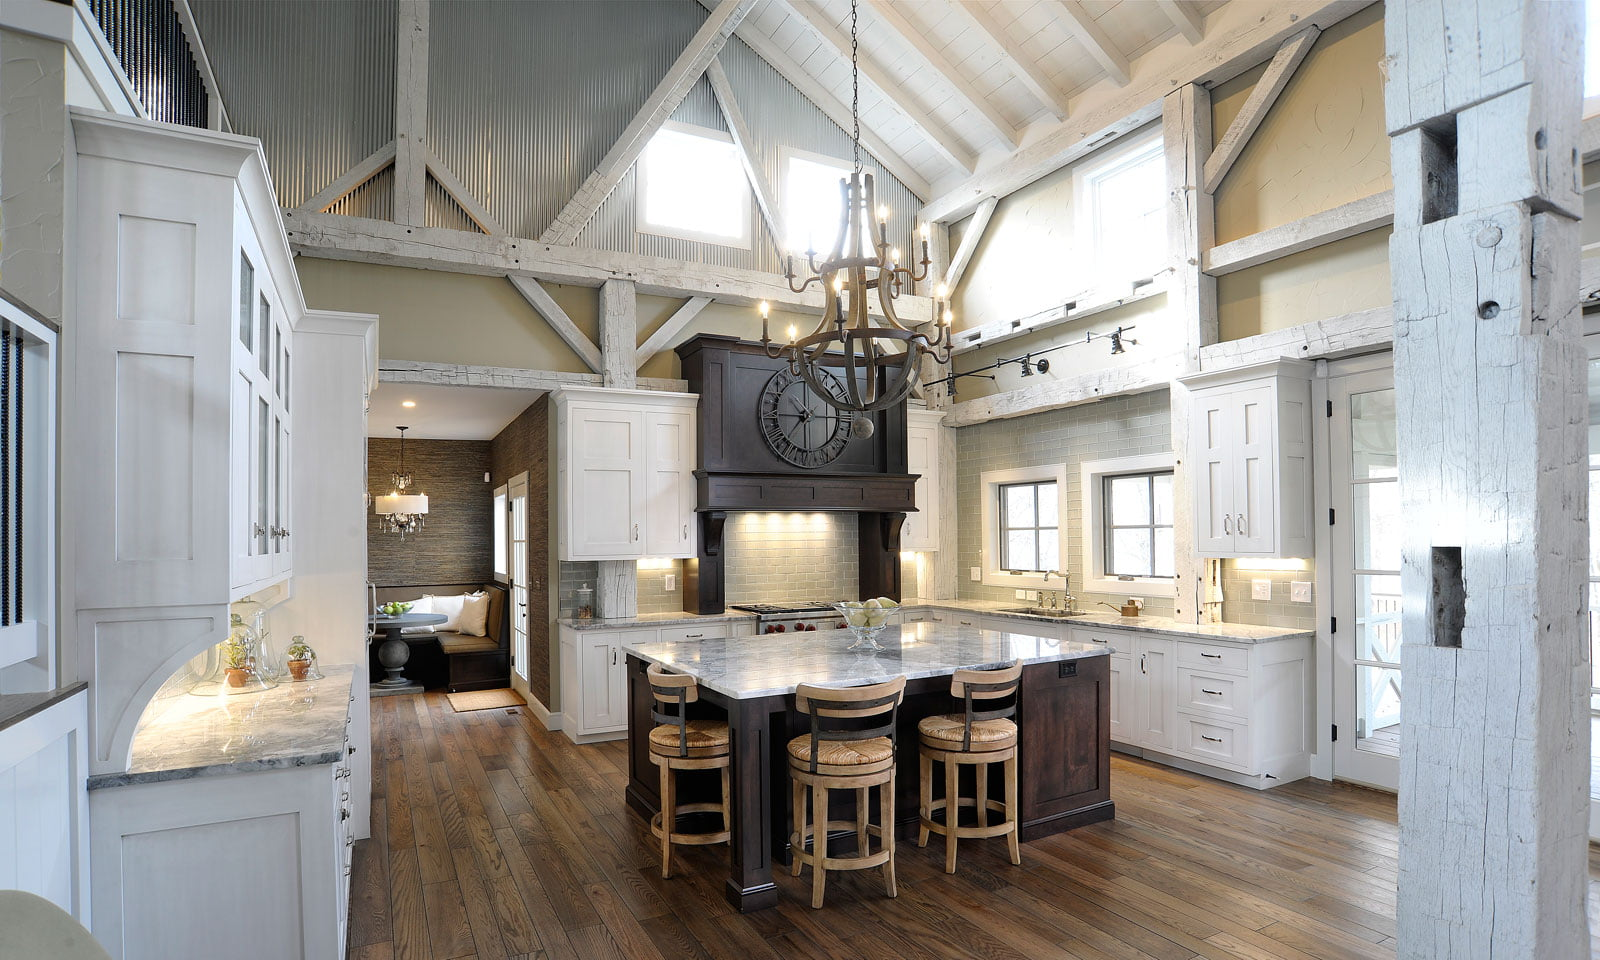 Stylish Kitchen Designs For Your Barn Home